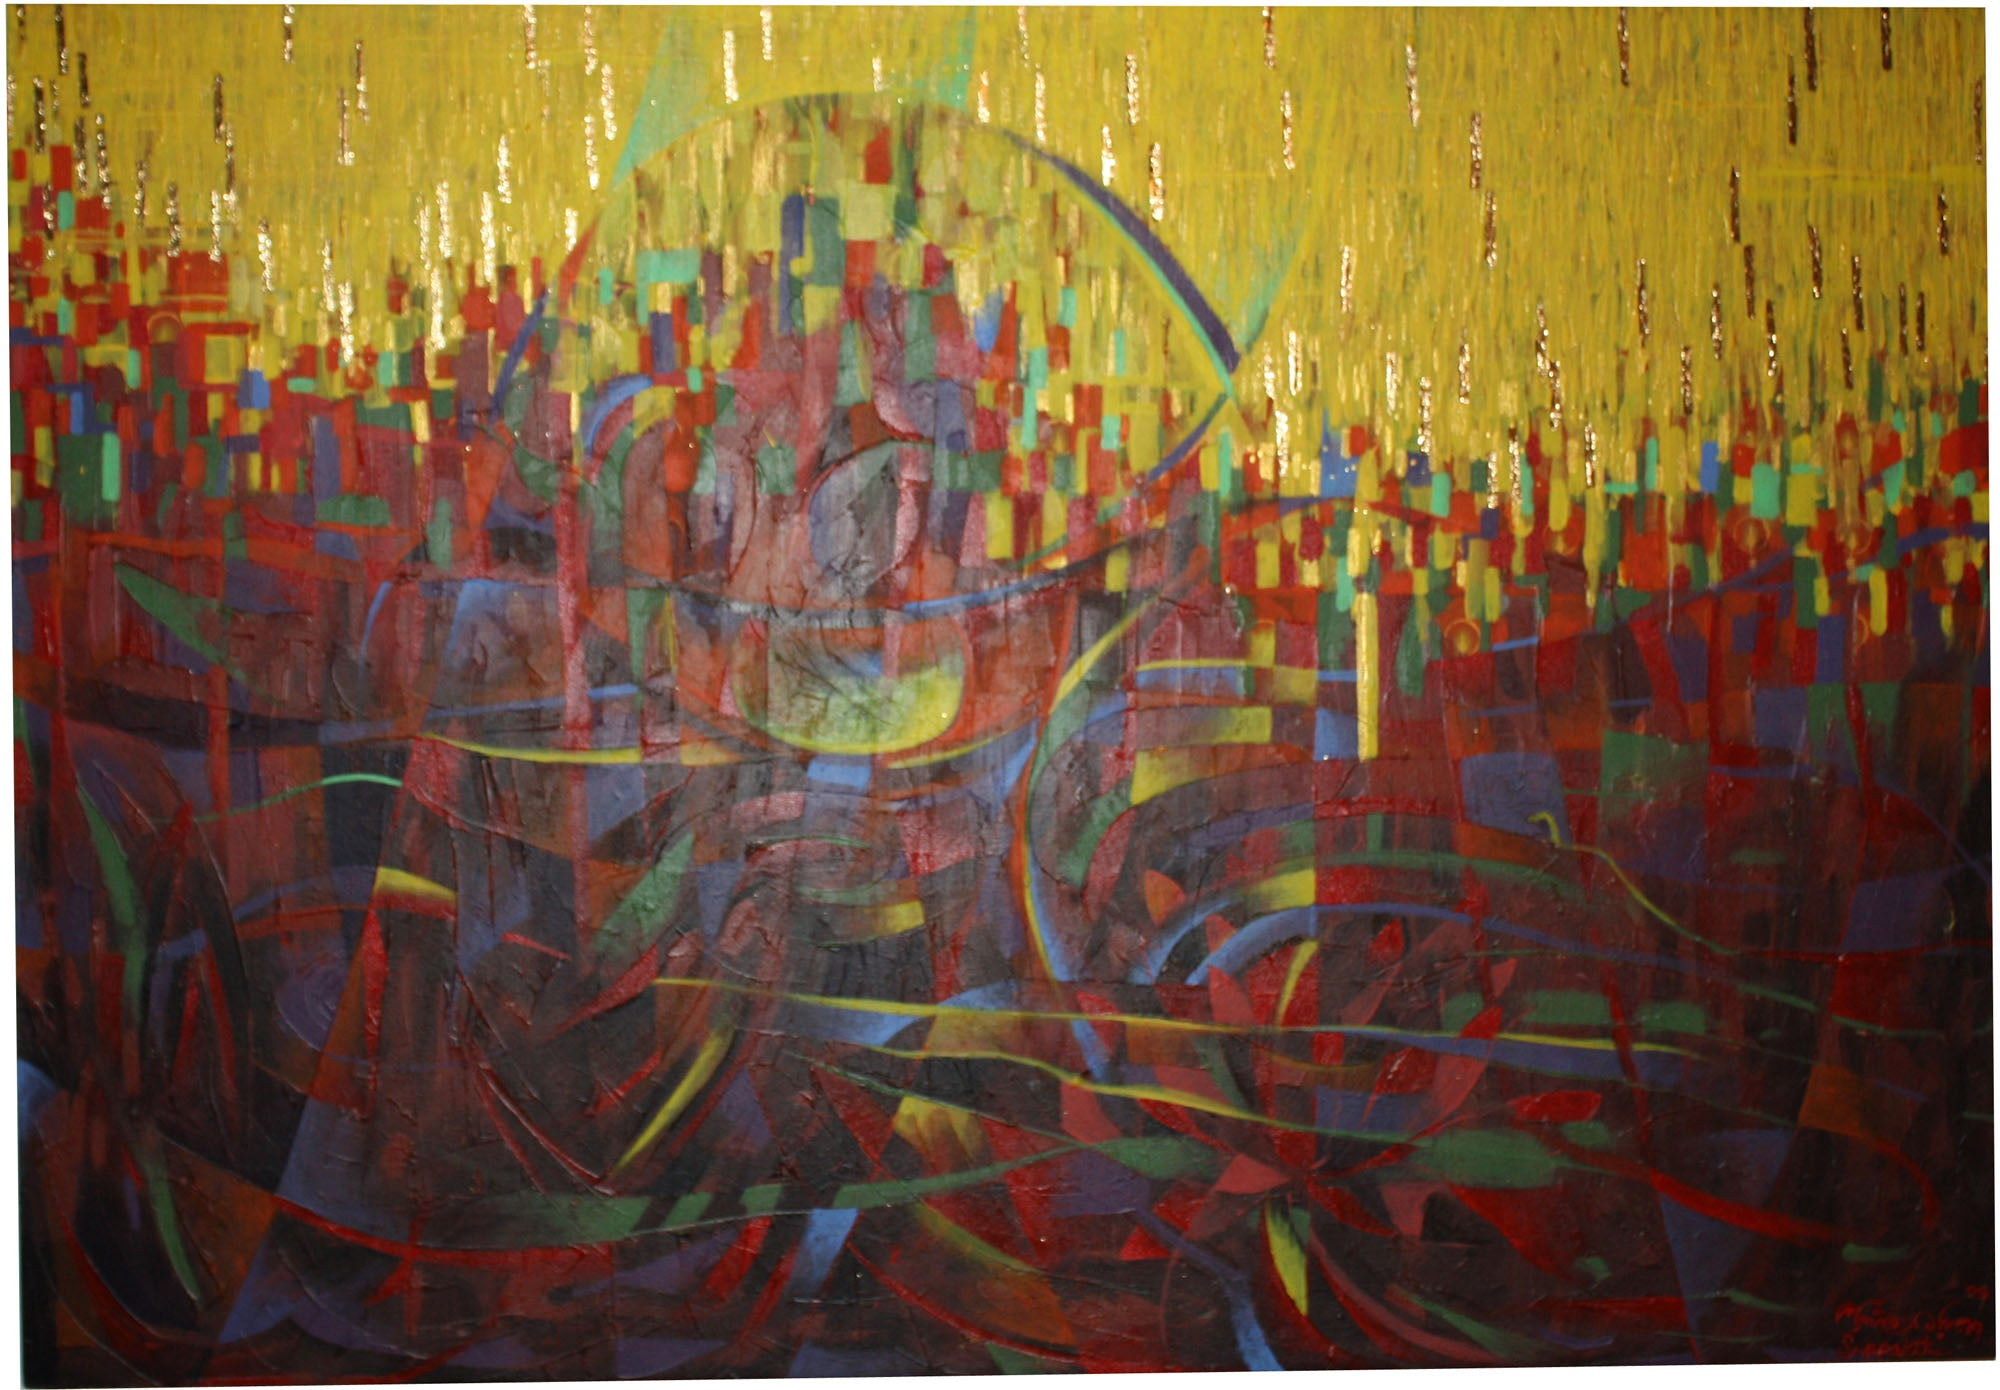 Suppakit Mukta, Abstract, 2009, 120cm x 83cm, Thai artist - farangshop-co